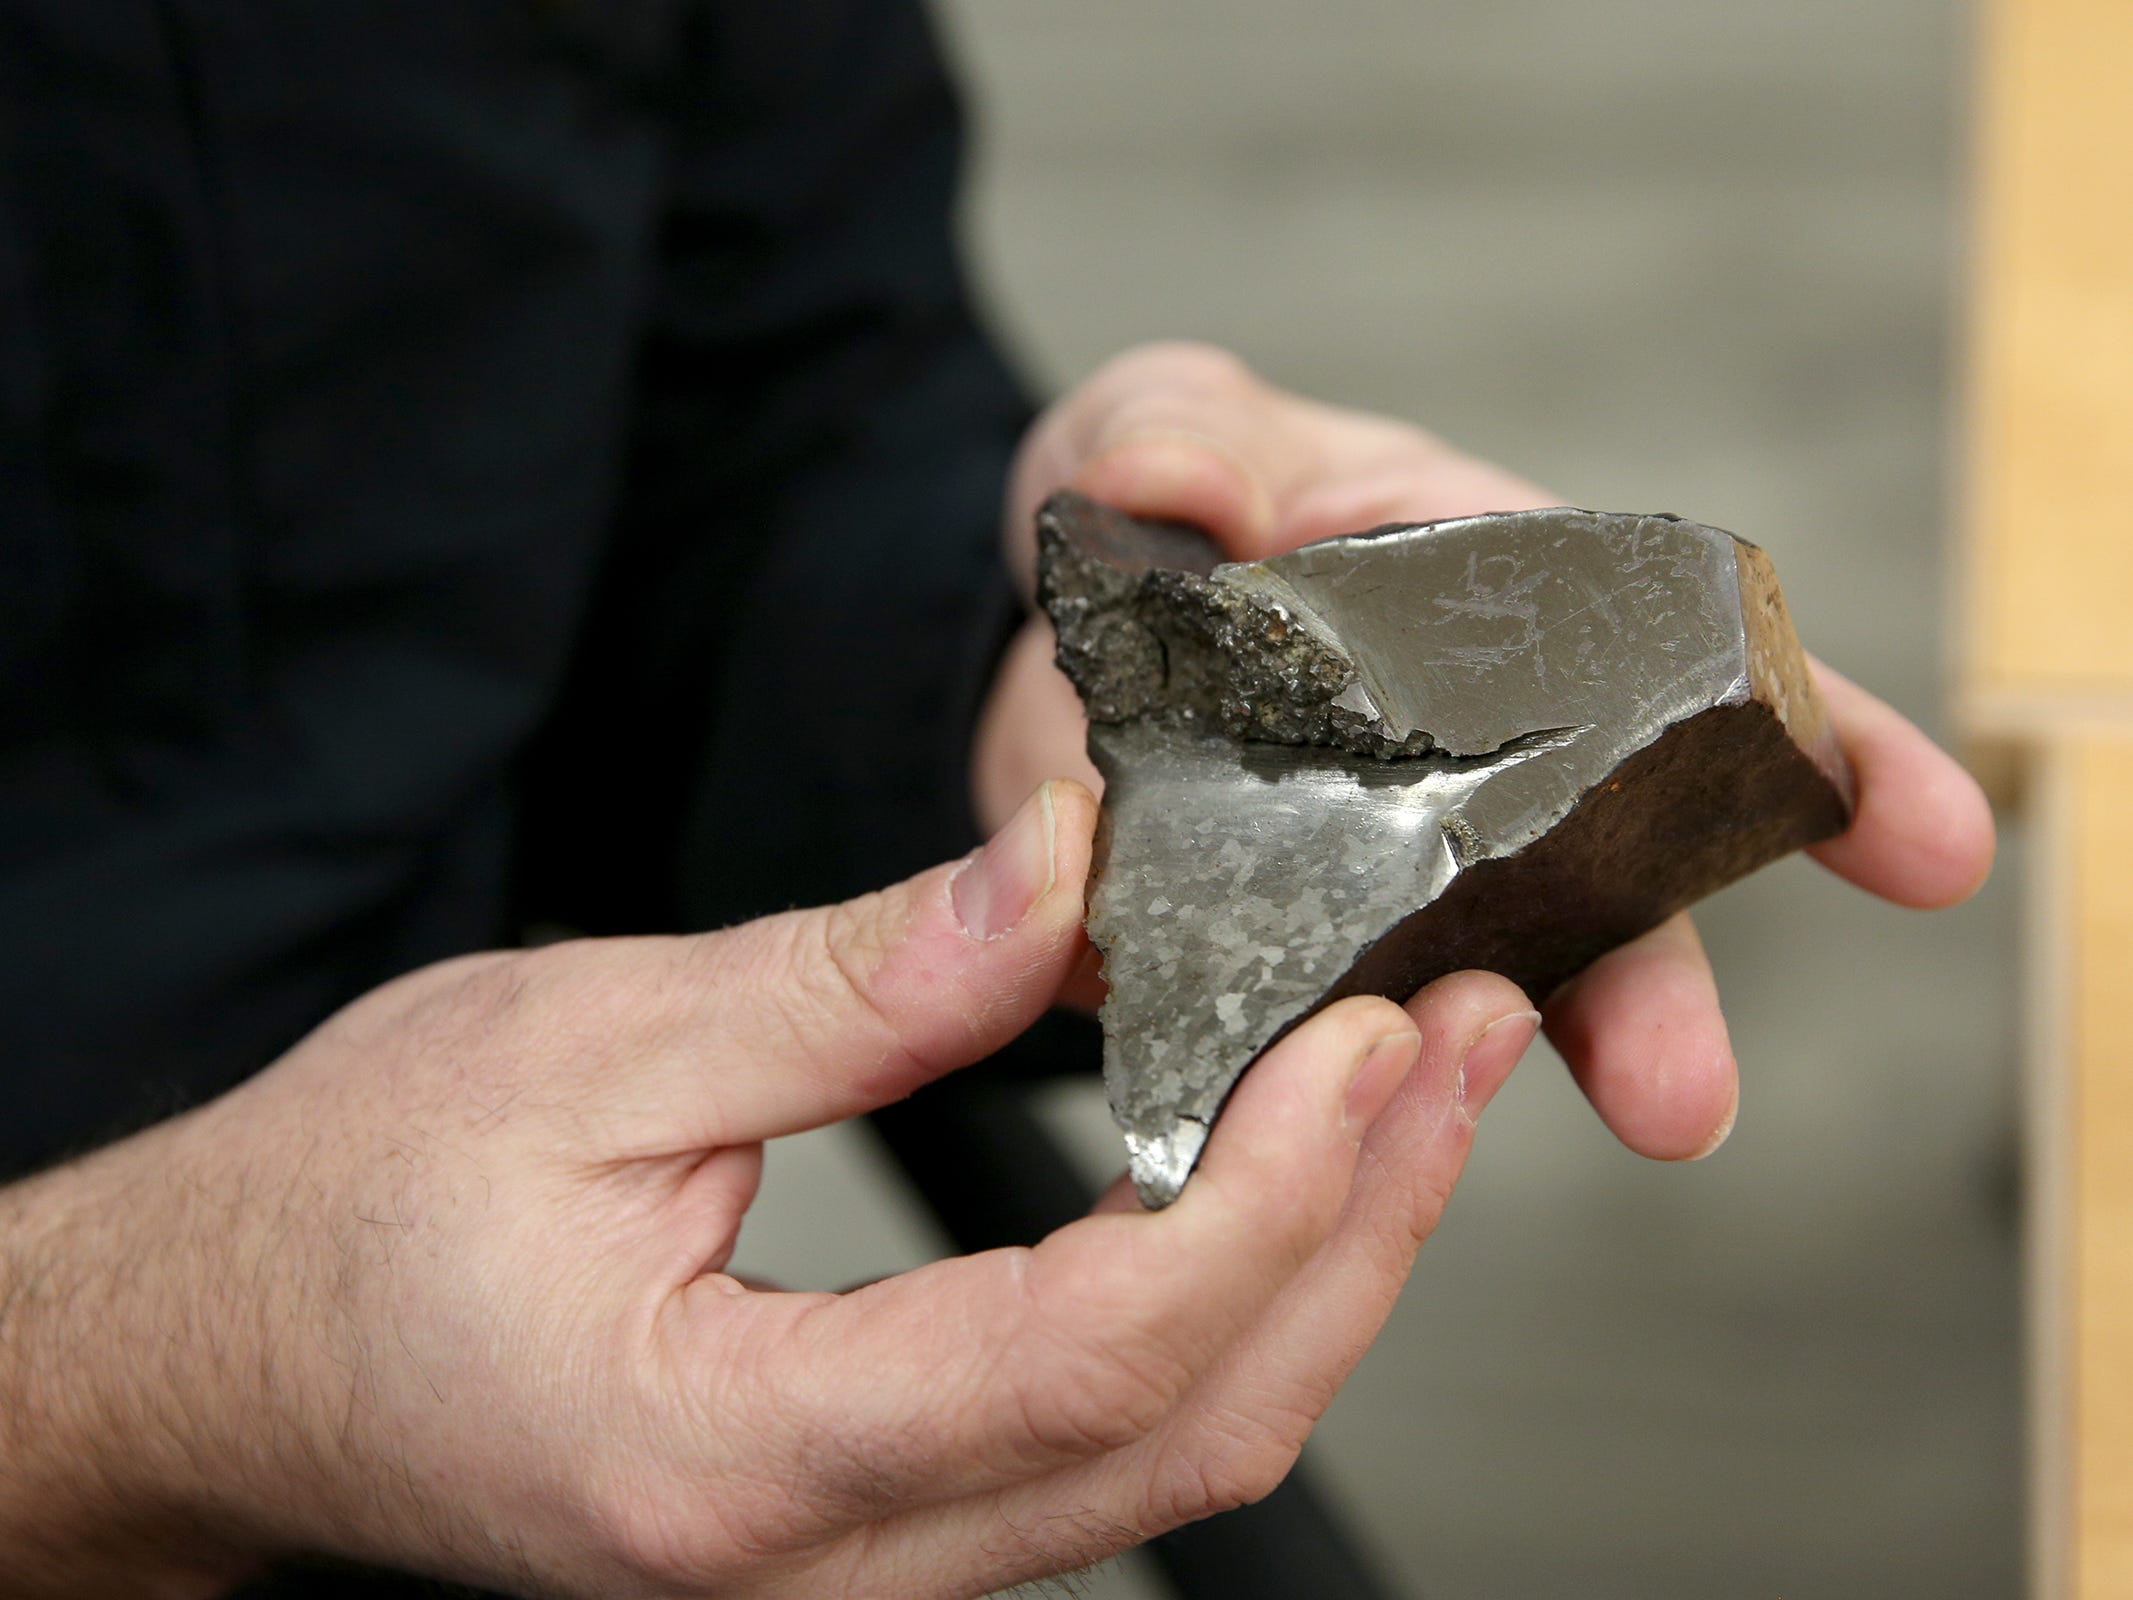 The Confederate Tribes of Grand Ronde Interpretive Coordinator, Travis Stewart, holds a piece of the meteorite Tomanowos, at the Chachalu Museum and Cultural Center in Grand Ronde on Thursday, Feb. 28, 2019.